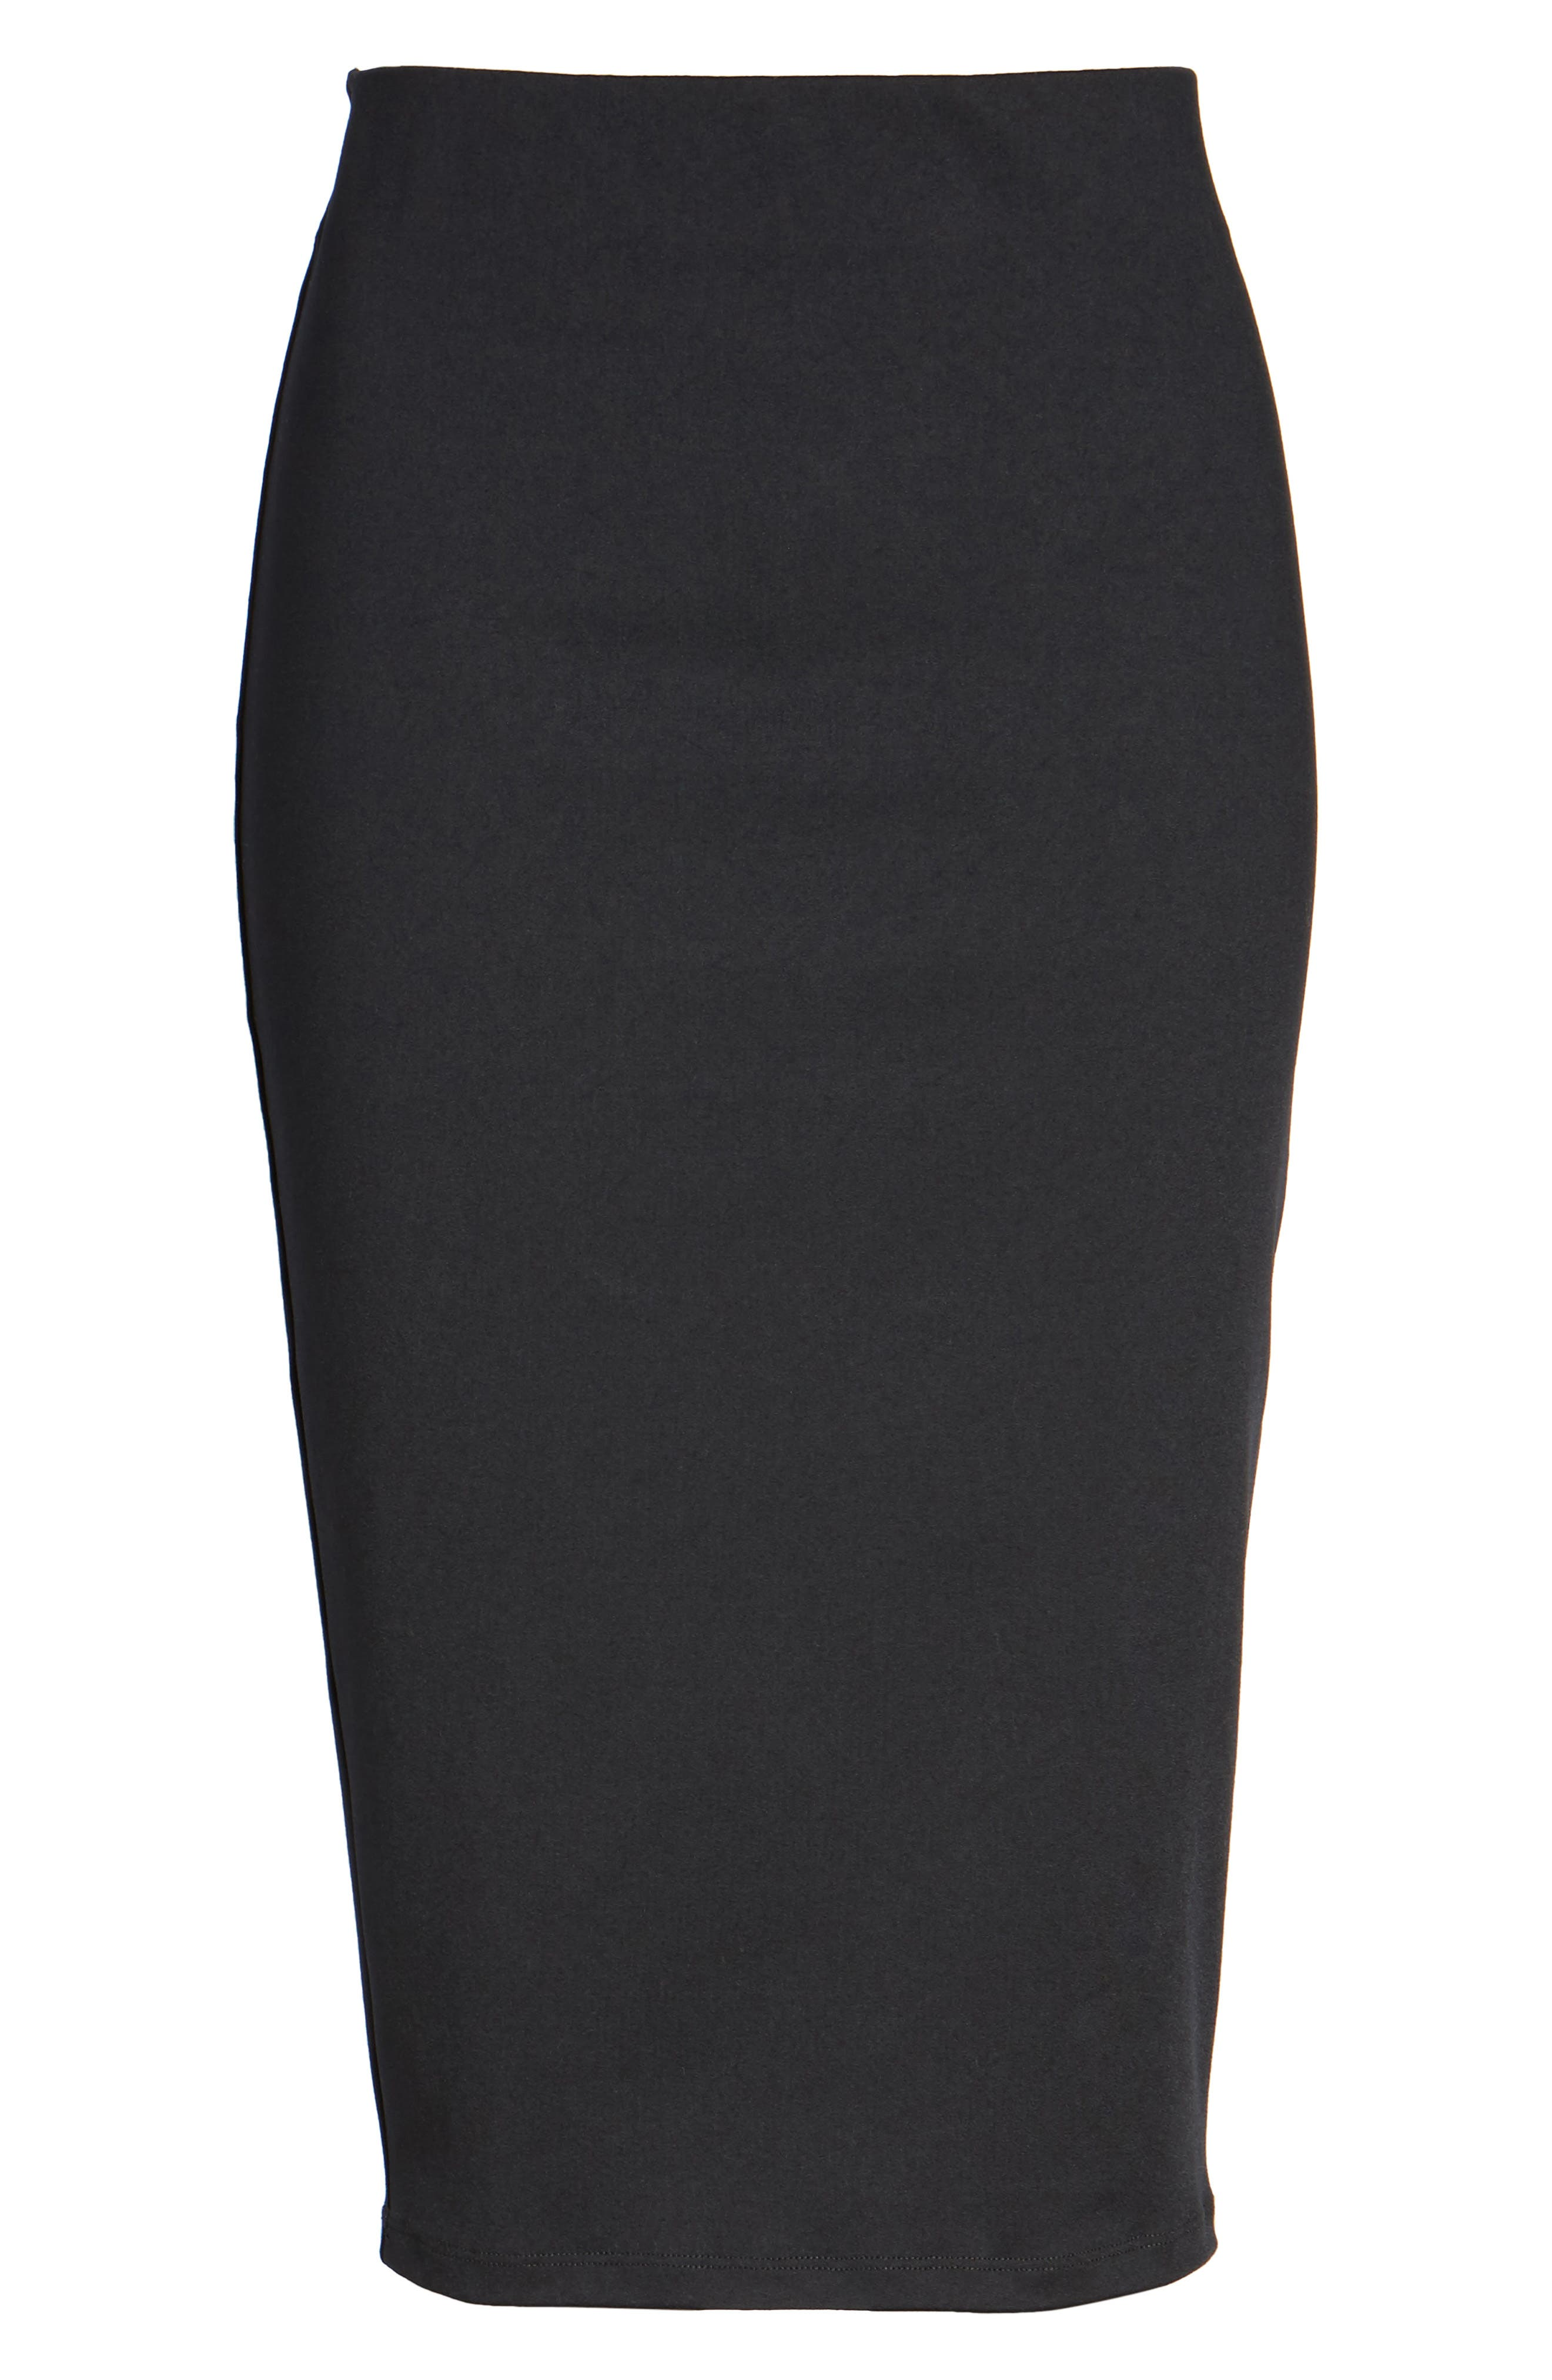 Tube High Rise Pencil Skirt,                             Alternate thumbnail 6, color,                             BLACK